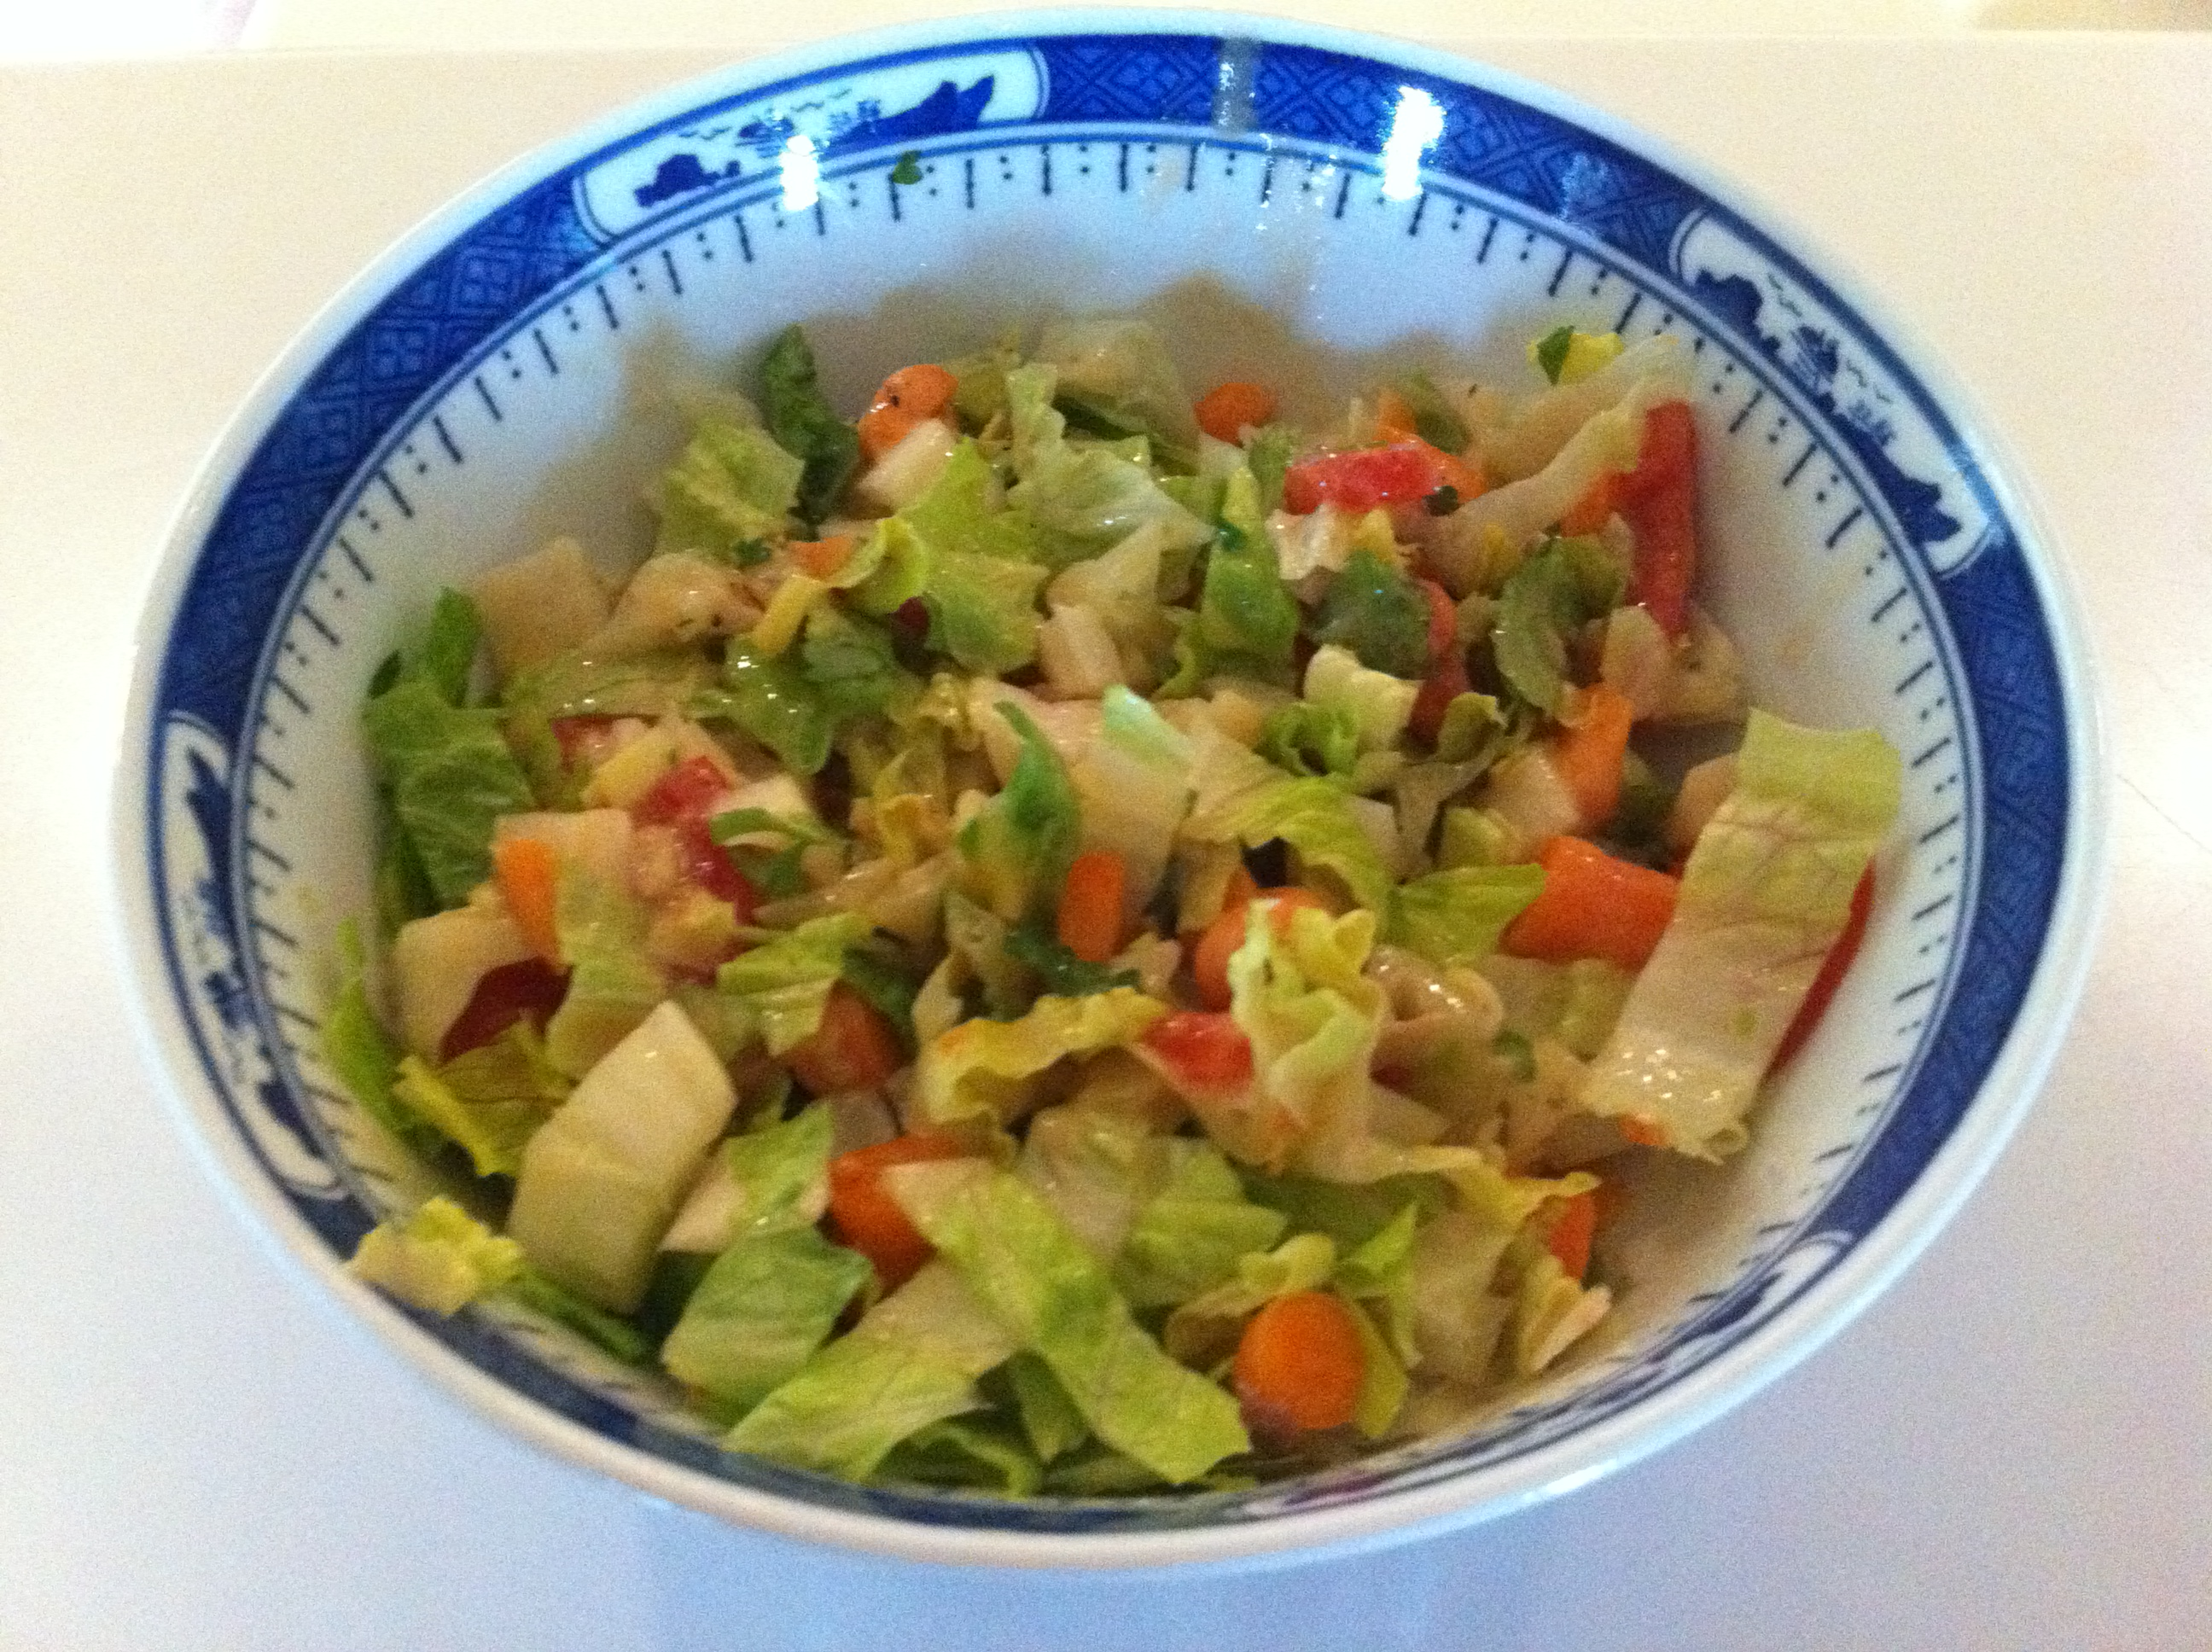 ... Salad Dressings and Vinaigrettes Dijon Vinaigrette Salad Dressing